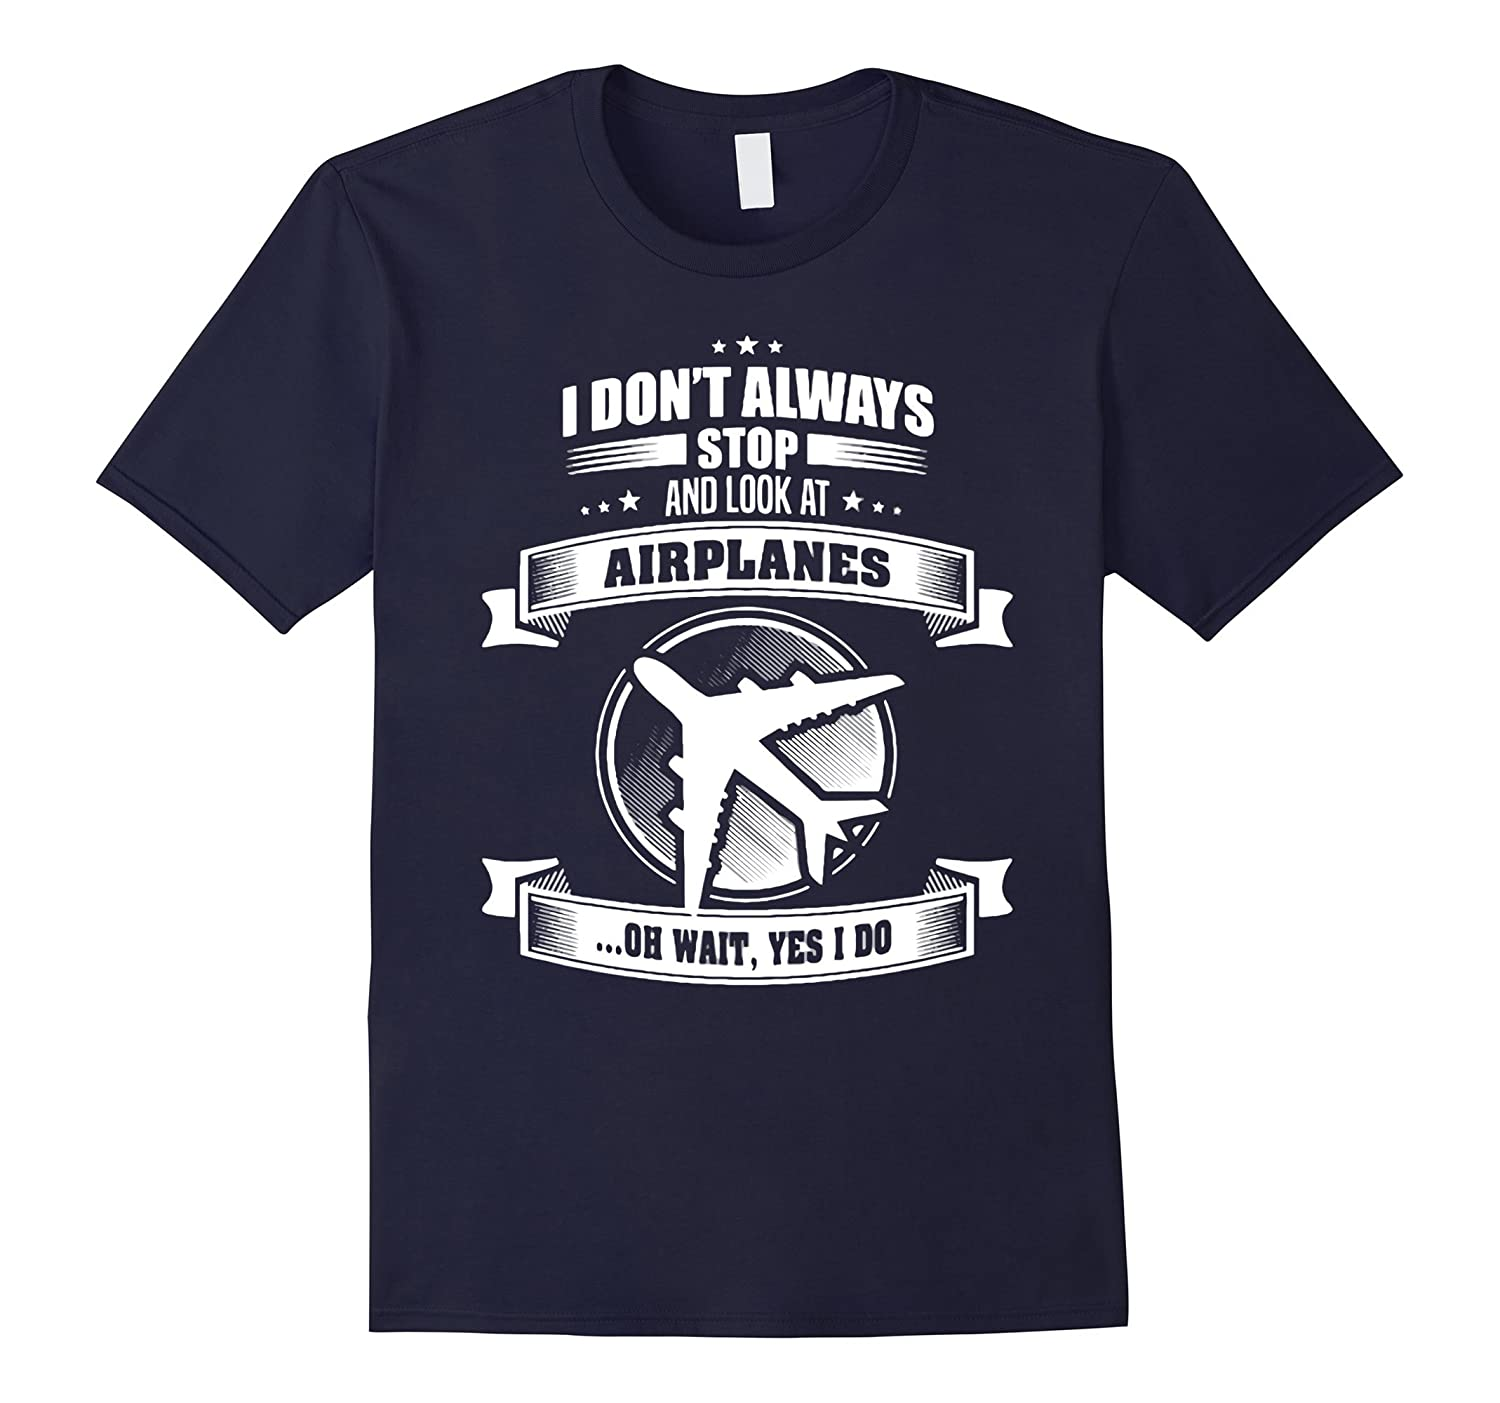 I DONT ALWAYS STOP AND LOOK AT AIRPLANE TSHIRT-Art